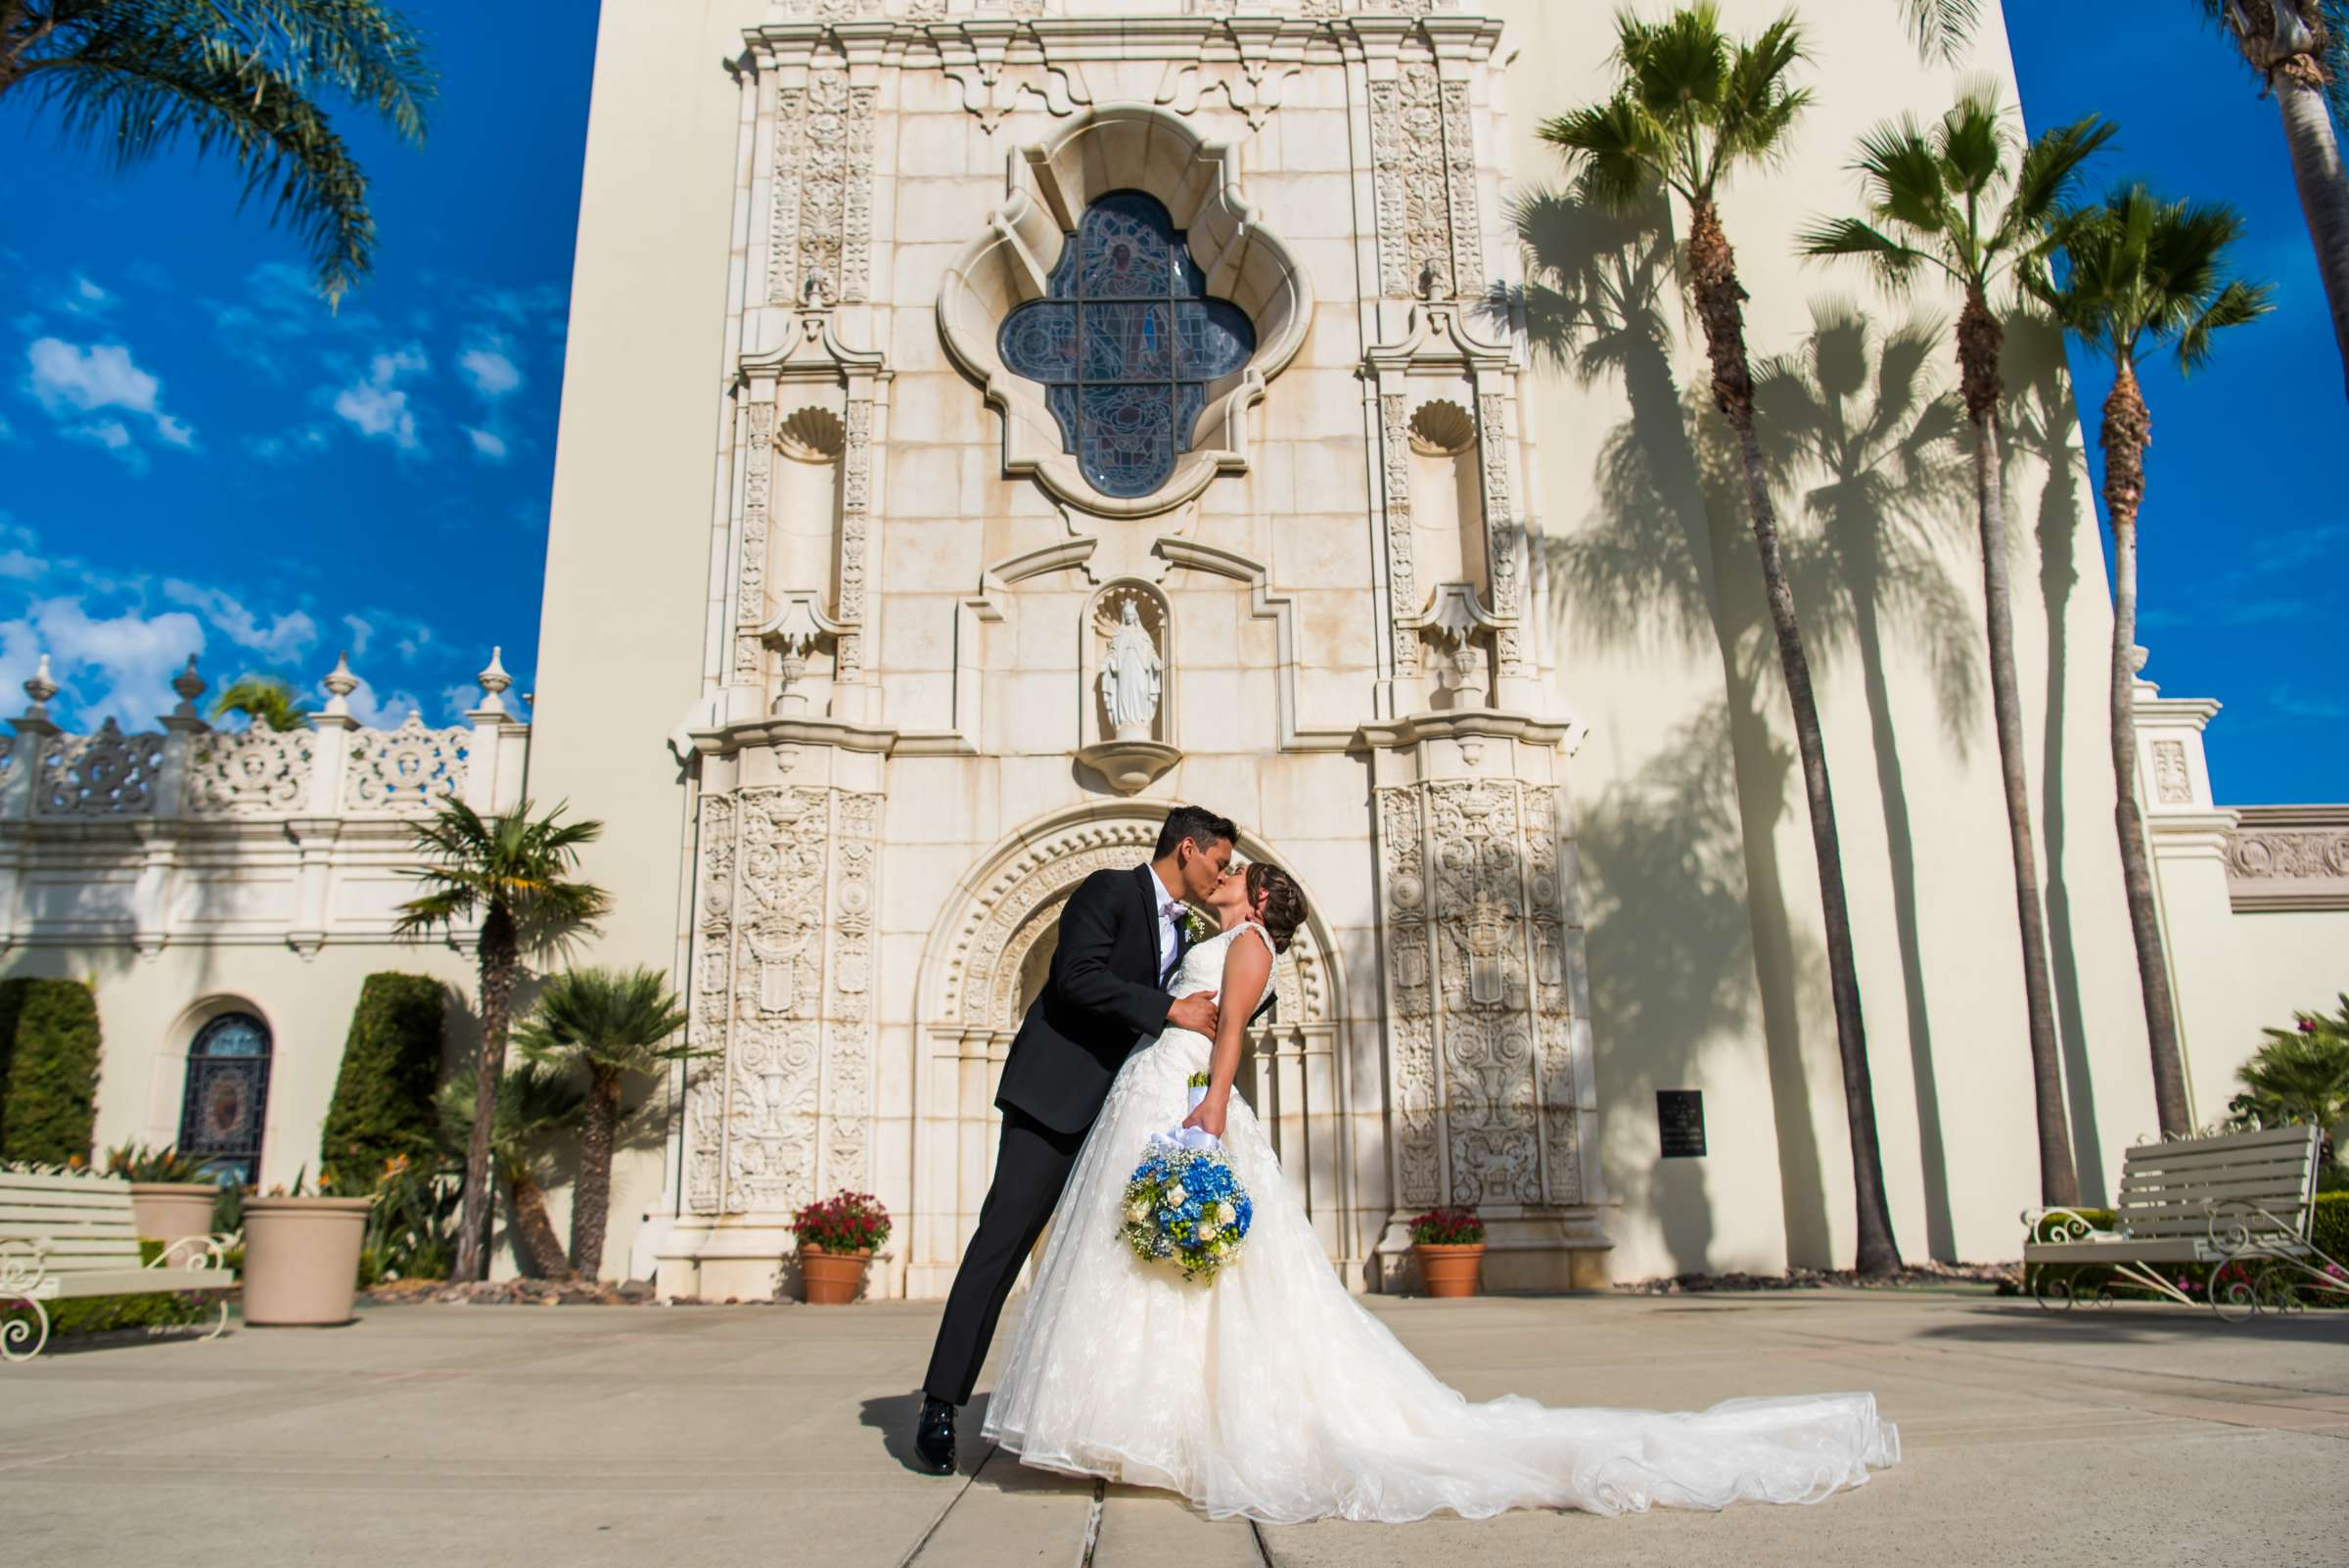 The Immaculata Wedding, Arianna and Jonah Wedding Photo #86 by True Photography